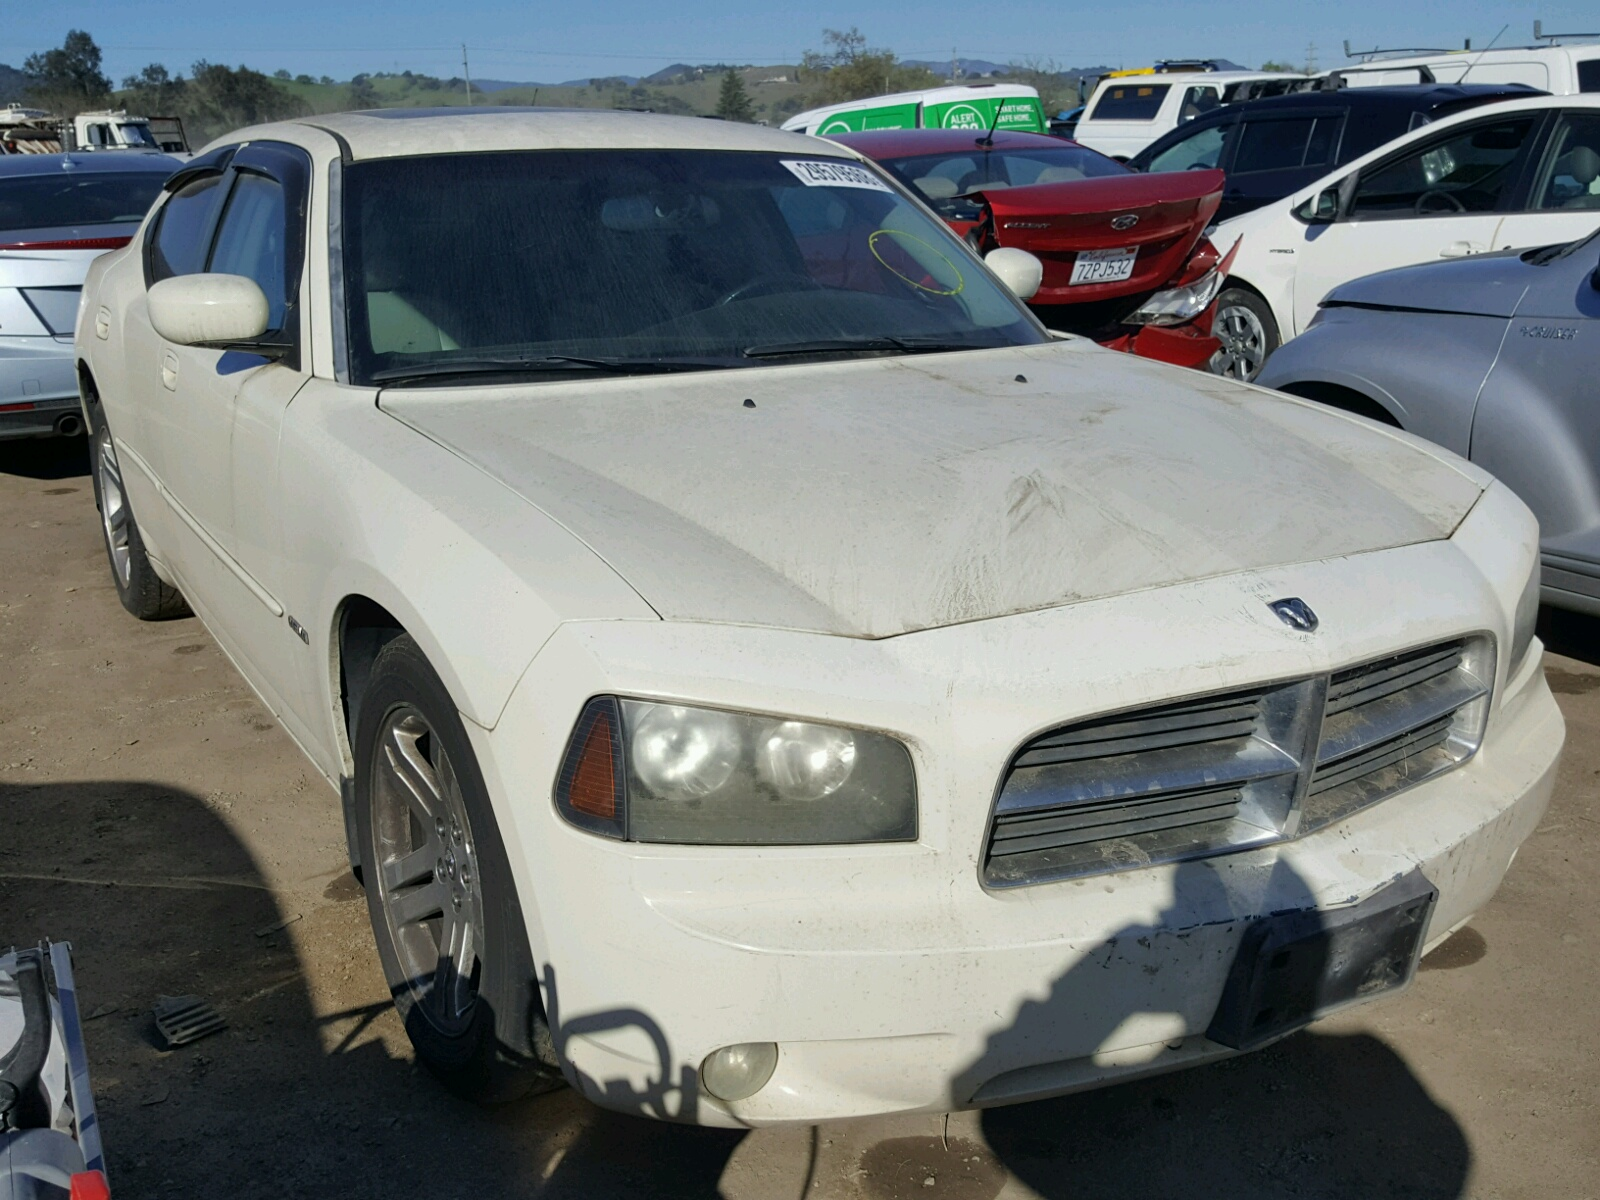 2b3ka53hx6h166357 2006 white dodge charger r on sale in ca san 2b3ka53hx6h166357 2006 dodge charger r 57l left view publicscrutiny Images